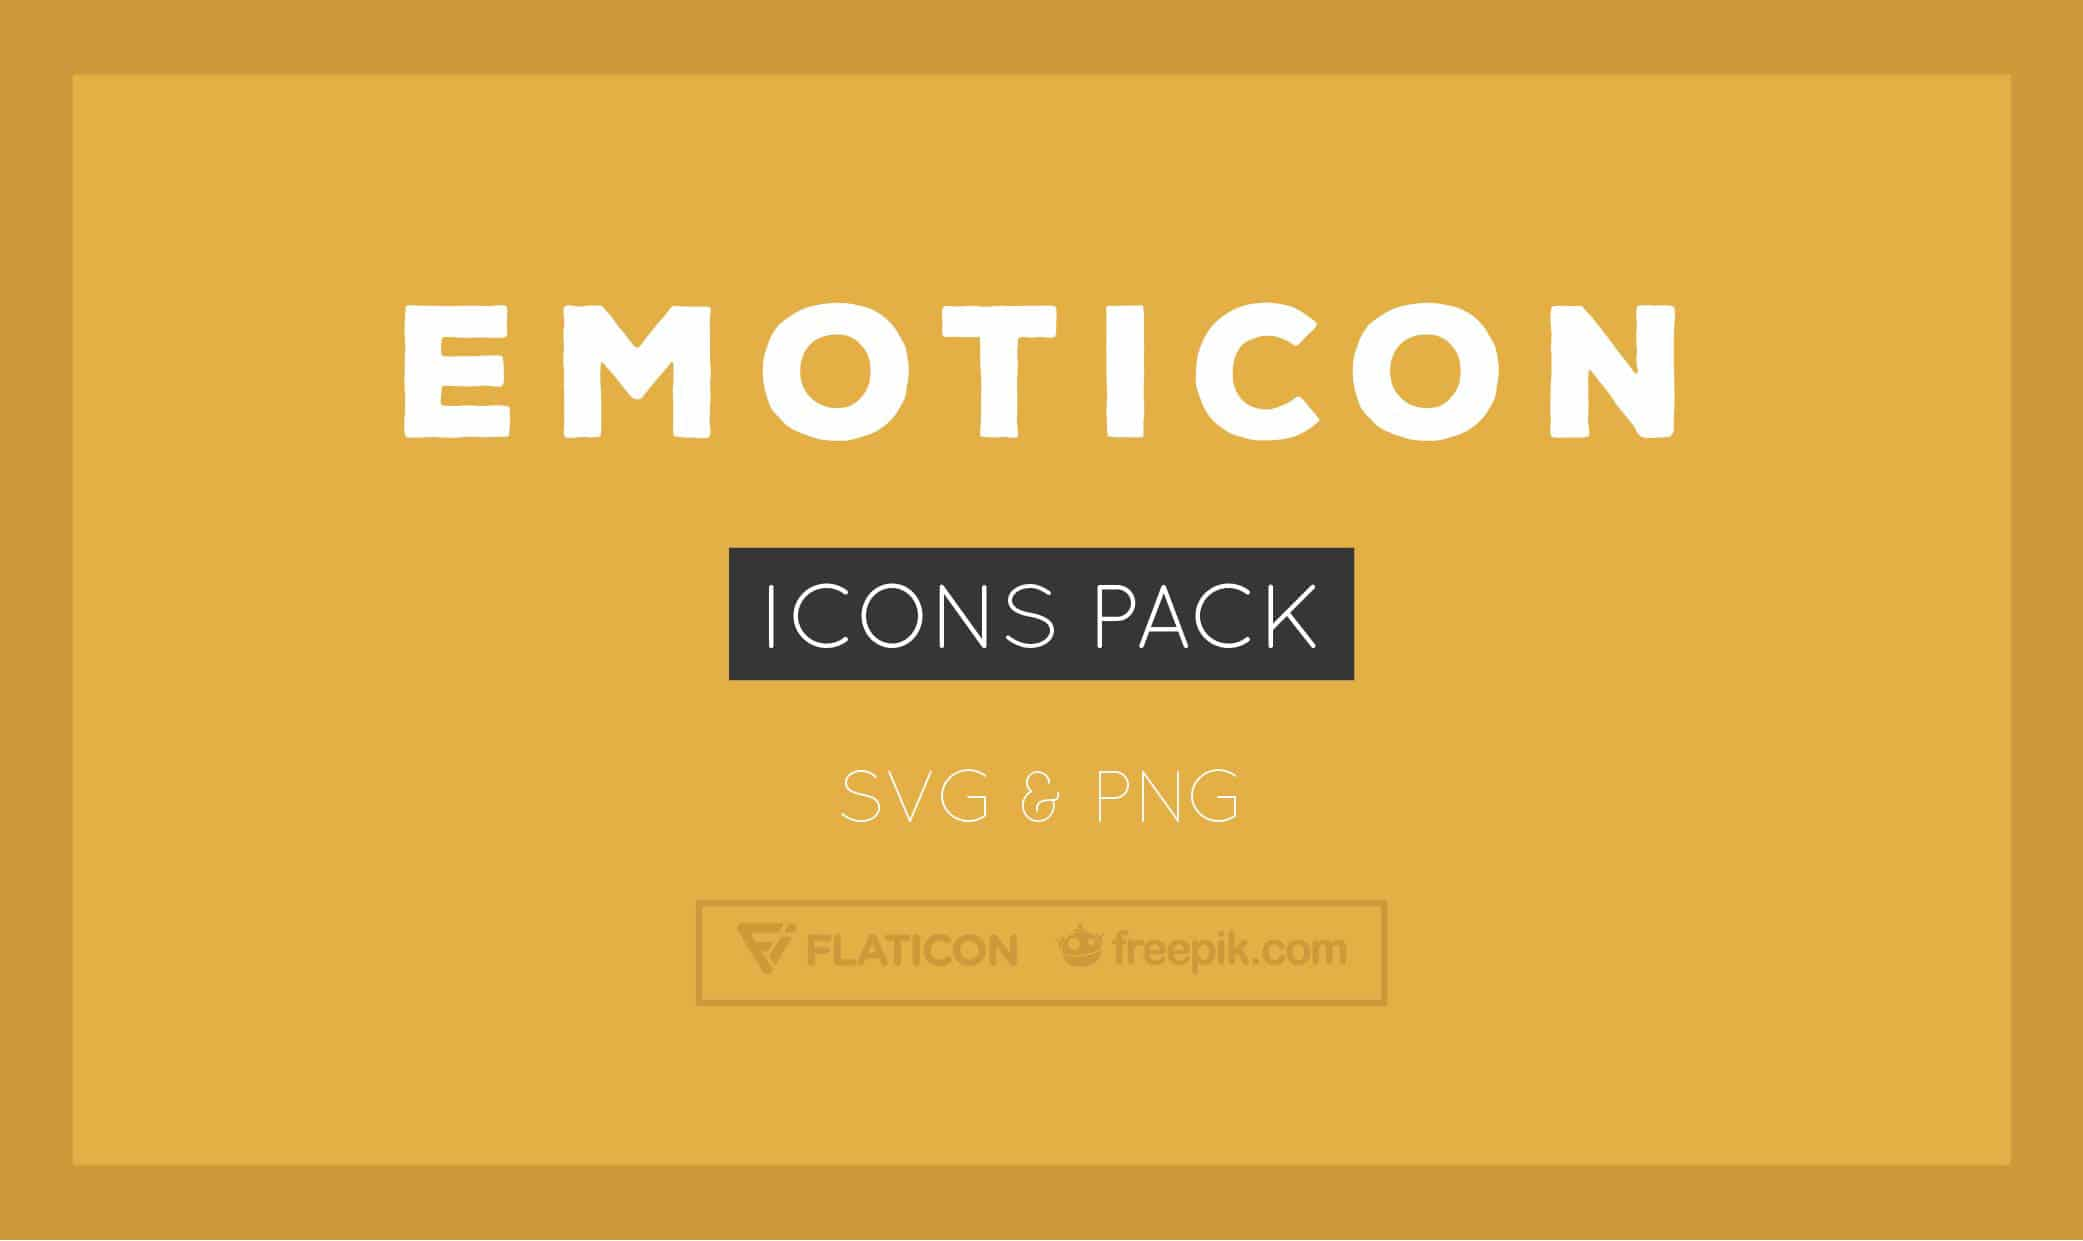 Free Emoticon Icons (SVG + PNG Formats)